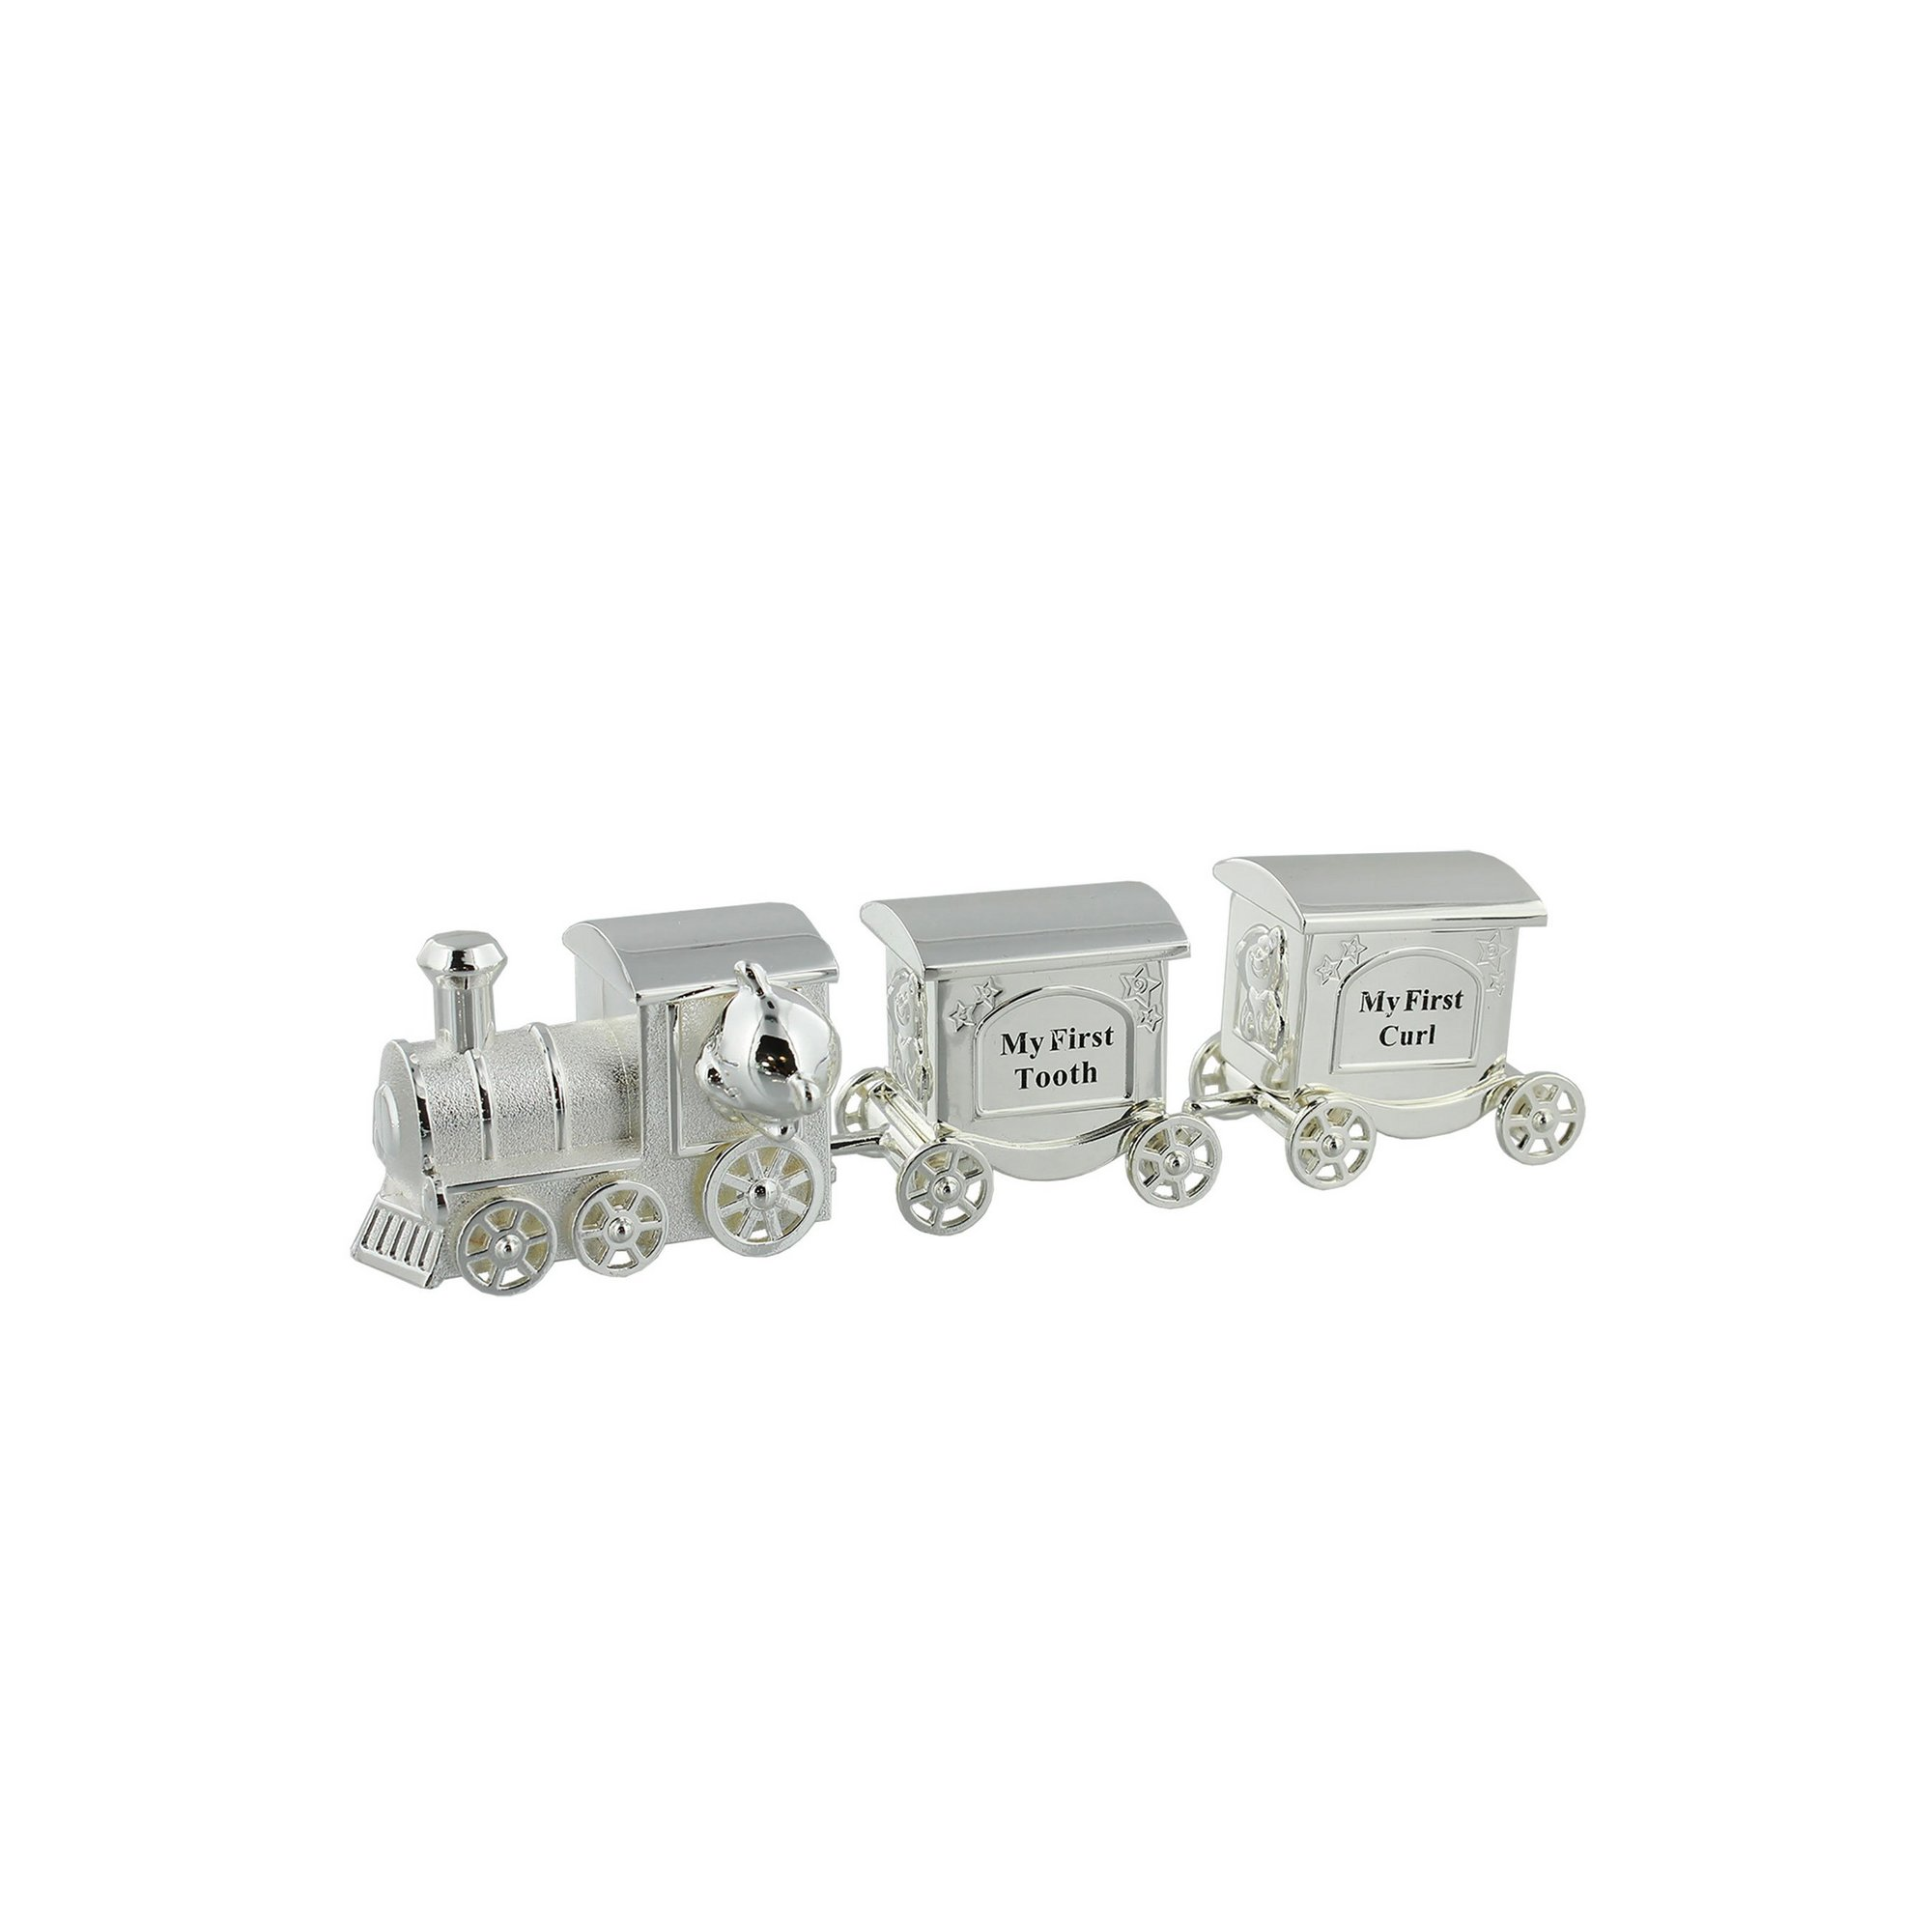 Image of Celebrations Silverplated Train First Tooth and Curl Set